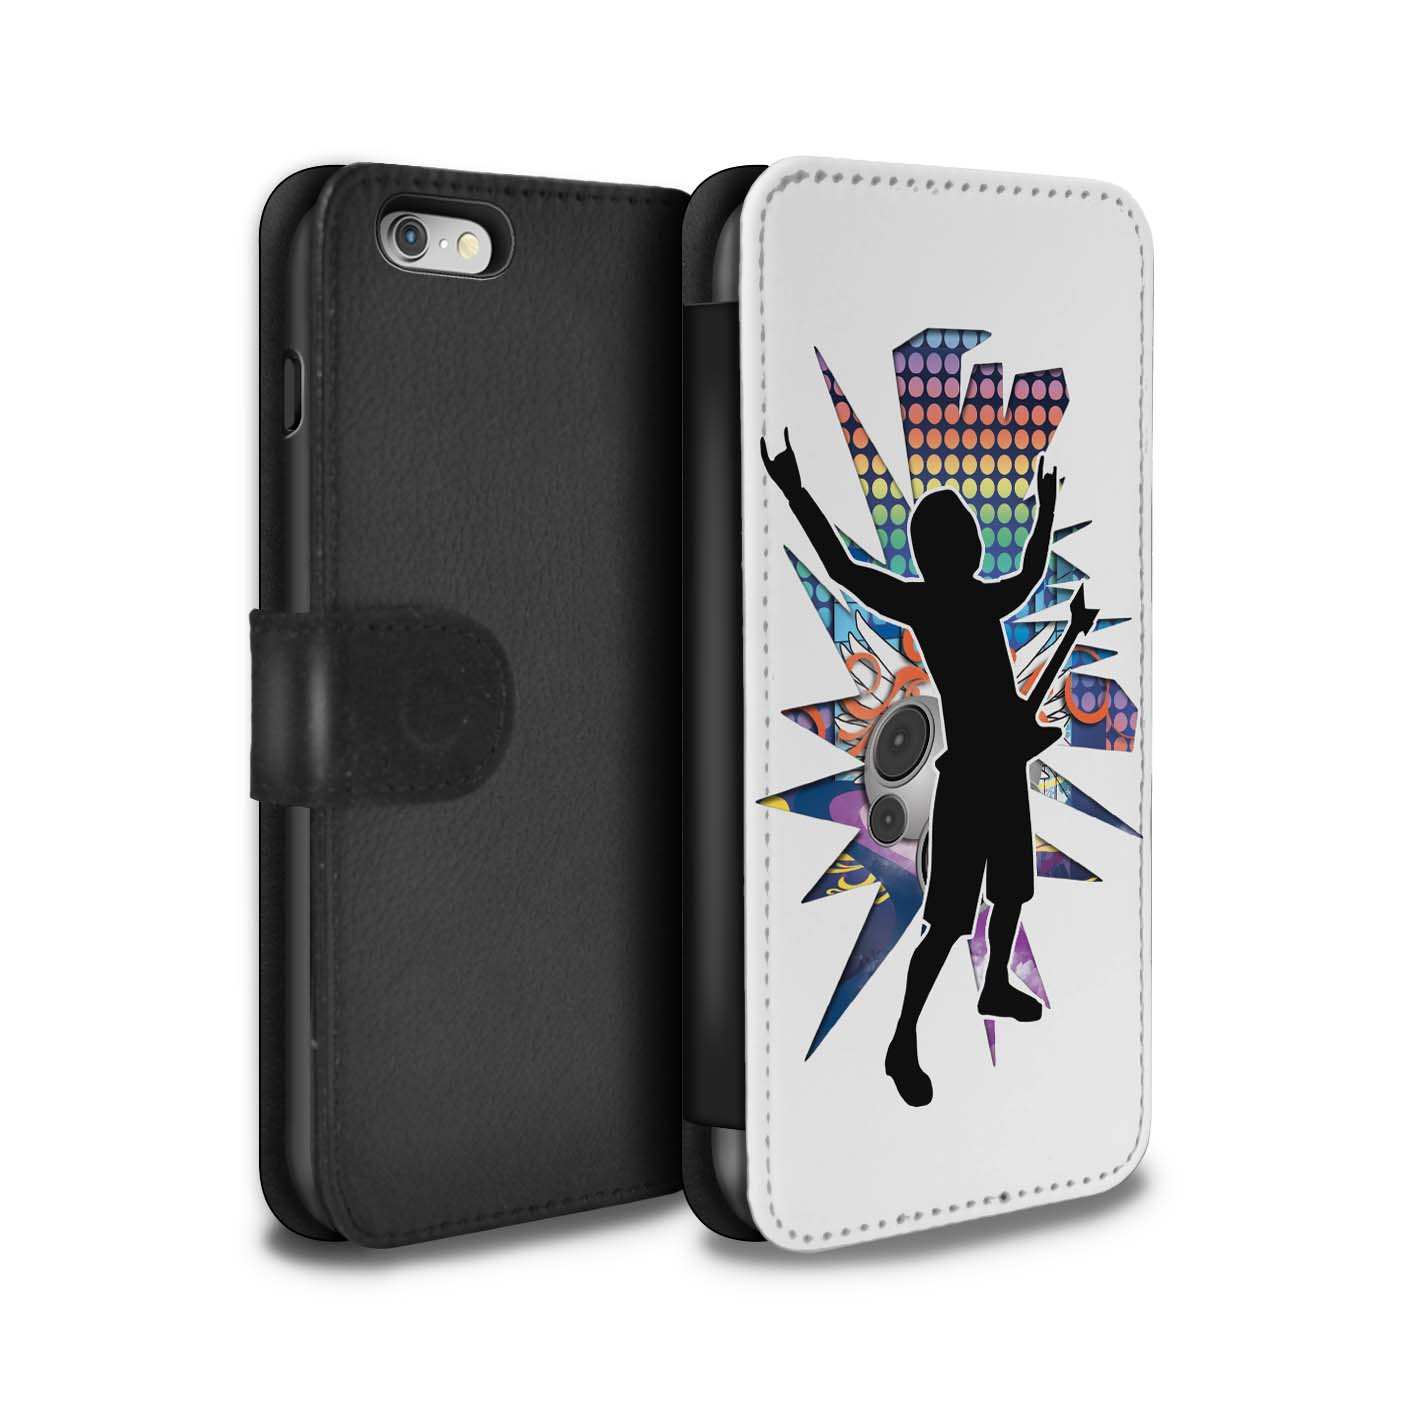 STUFF4-Coque-Etui-Case-Cuir-PU-pour-Apple-iPhone-6-Rock-Star-Pose